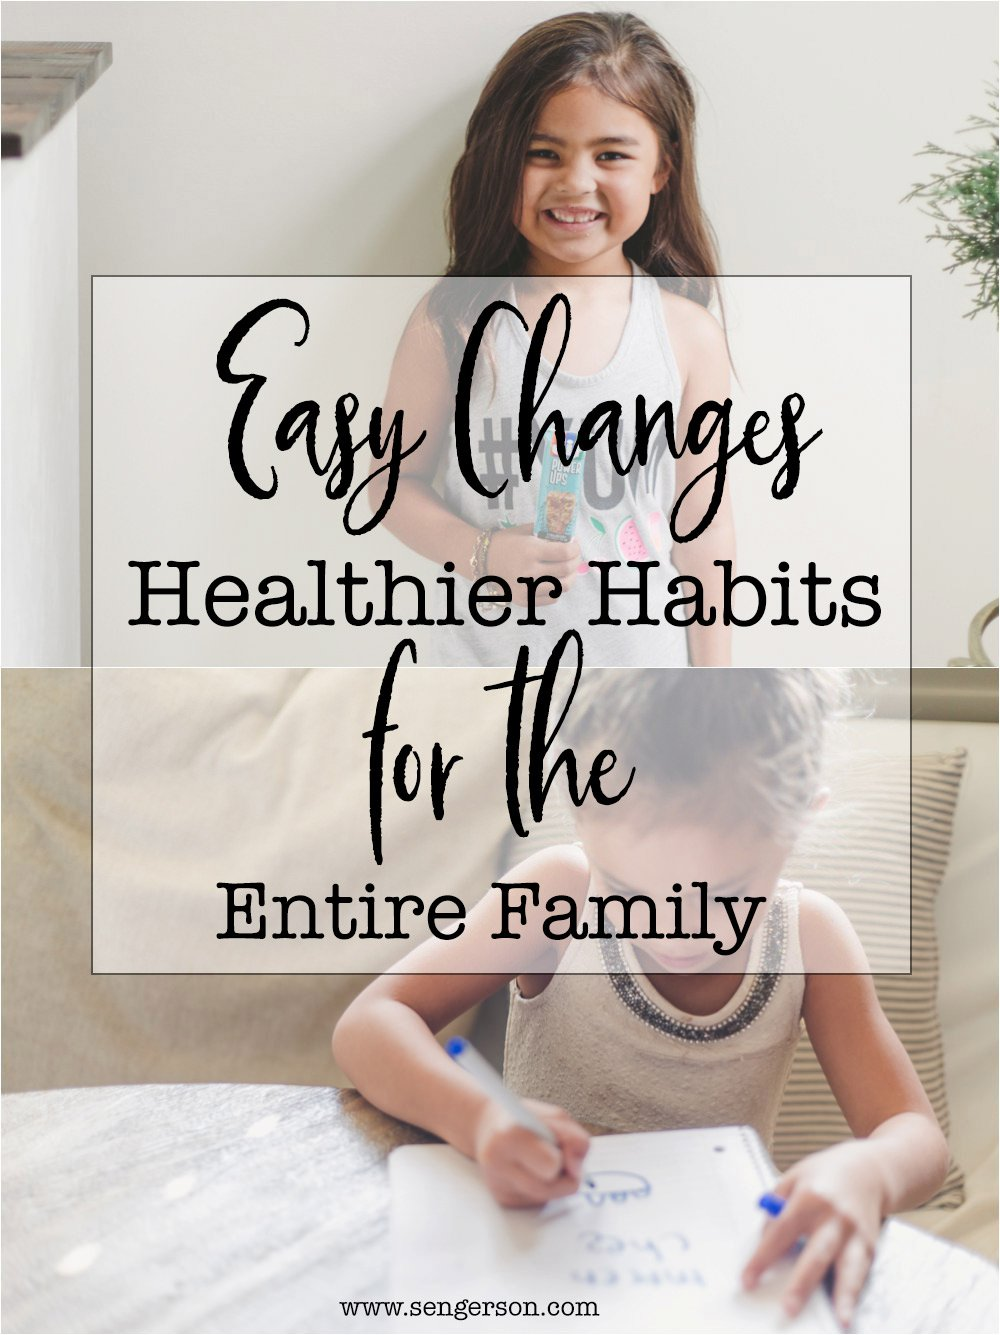 Healthier habits for the new year don't have to be hard. Here are a few ways to implement some easy changes to a more energized new year with the family. @JIF #newyearsresolution #JifPowerUps #RTJifPowerUps #ad  #snacking #JifPowerUps #RTJifPowerUps